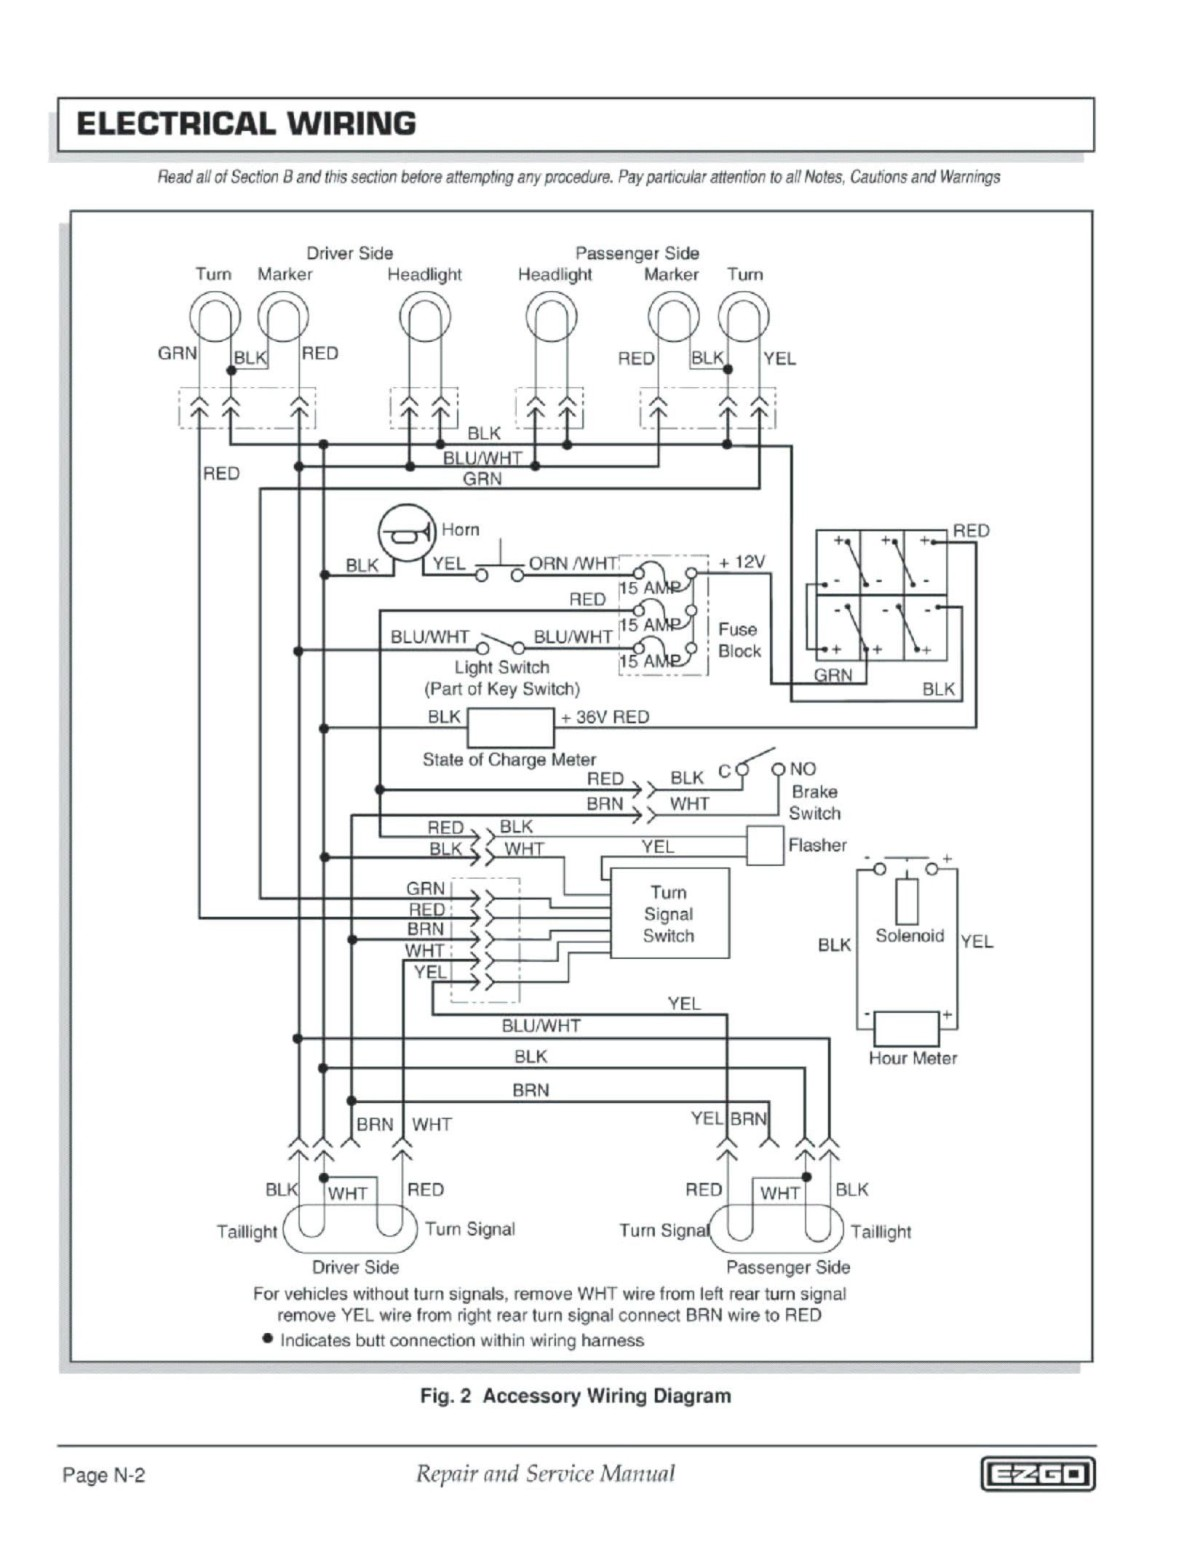 A/c Wiring Diagram Sterling